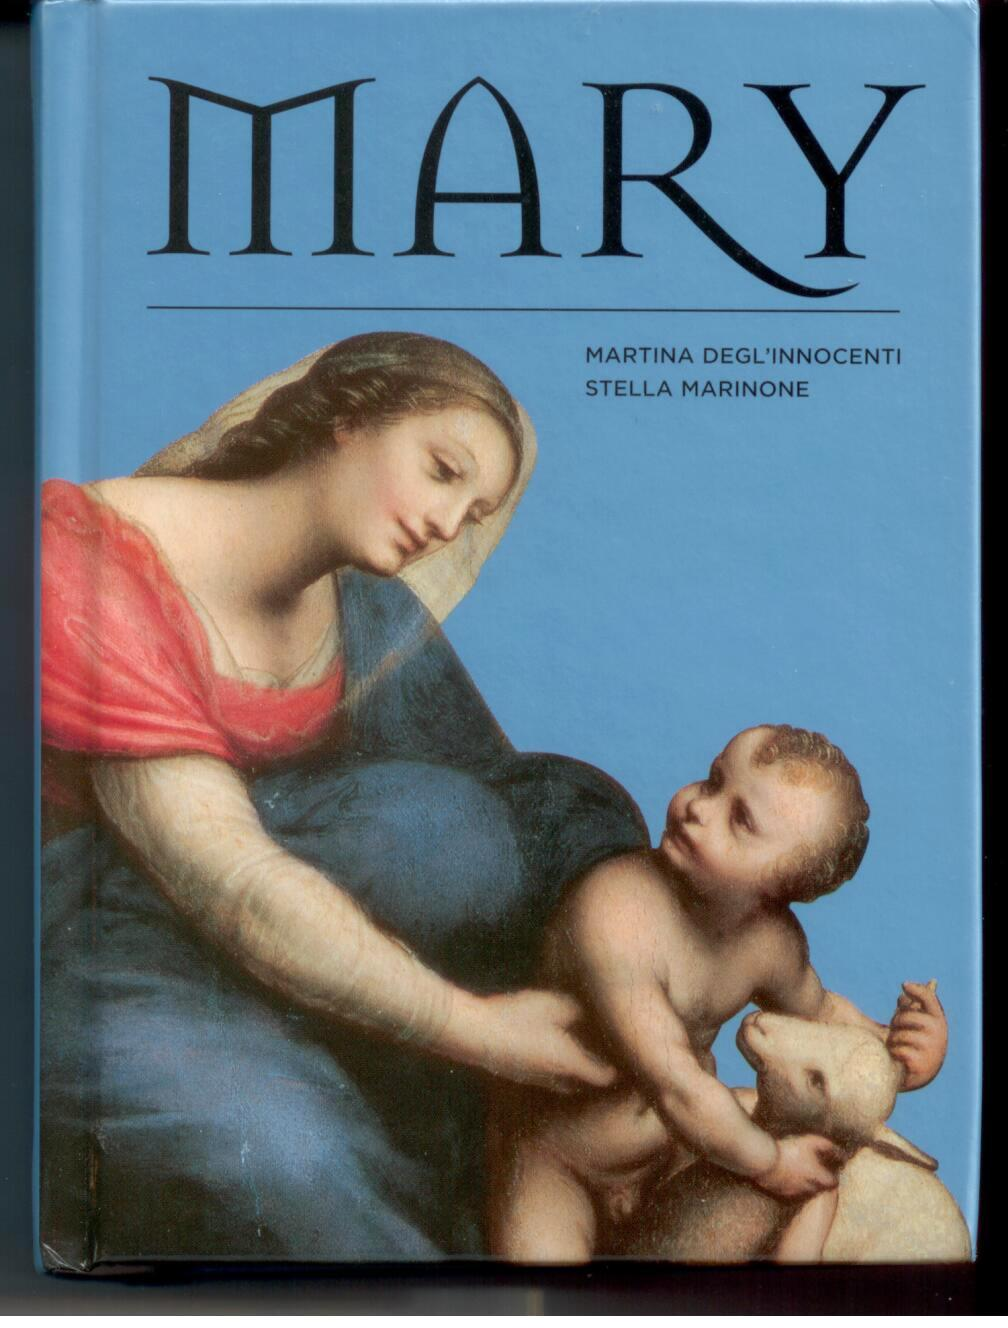 Mary by Martina Degl' Innocenti And Stella Marinone 108-9780810982857